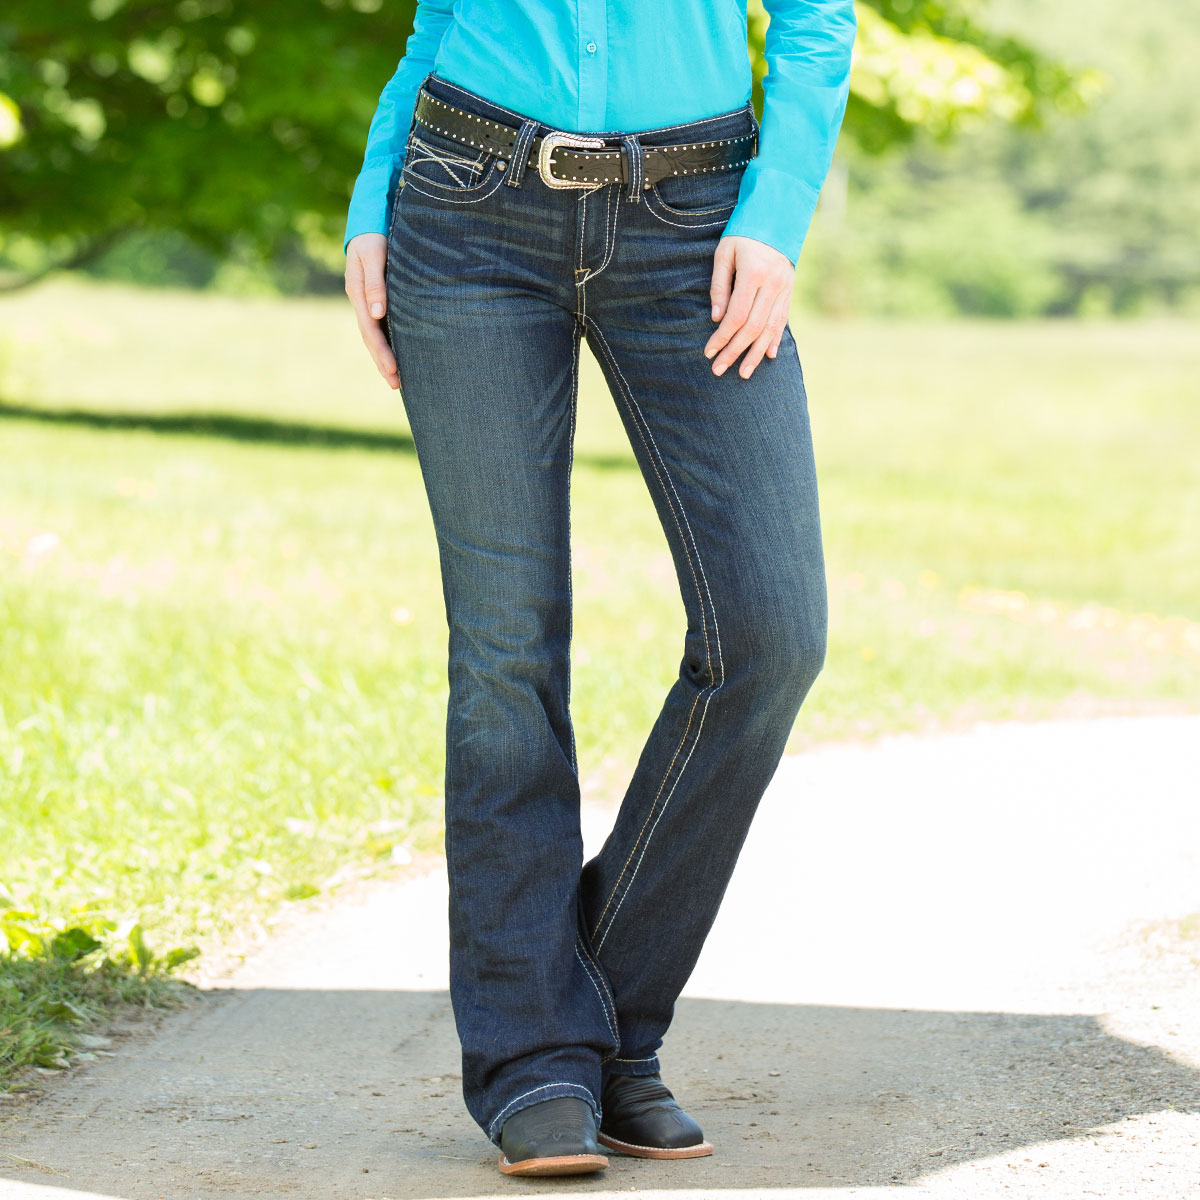 7a28547b Ariat Women's R.E.A.L. Riding Jeans Boot Cut- Ocean